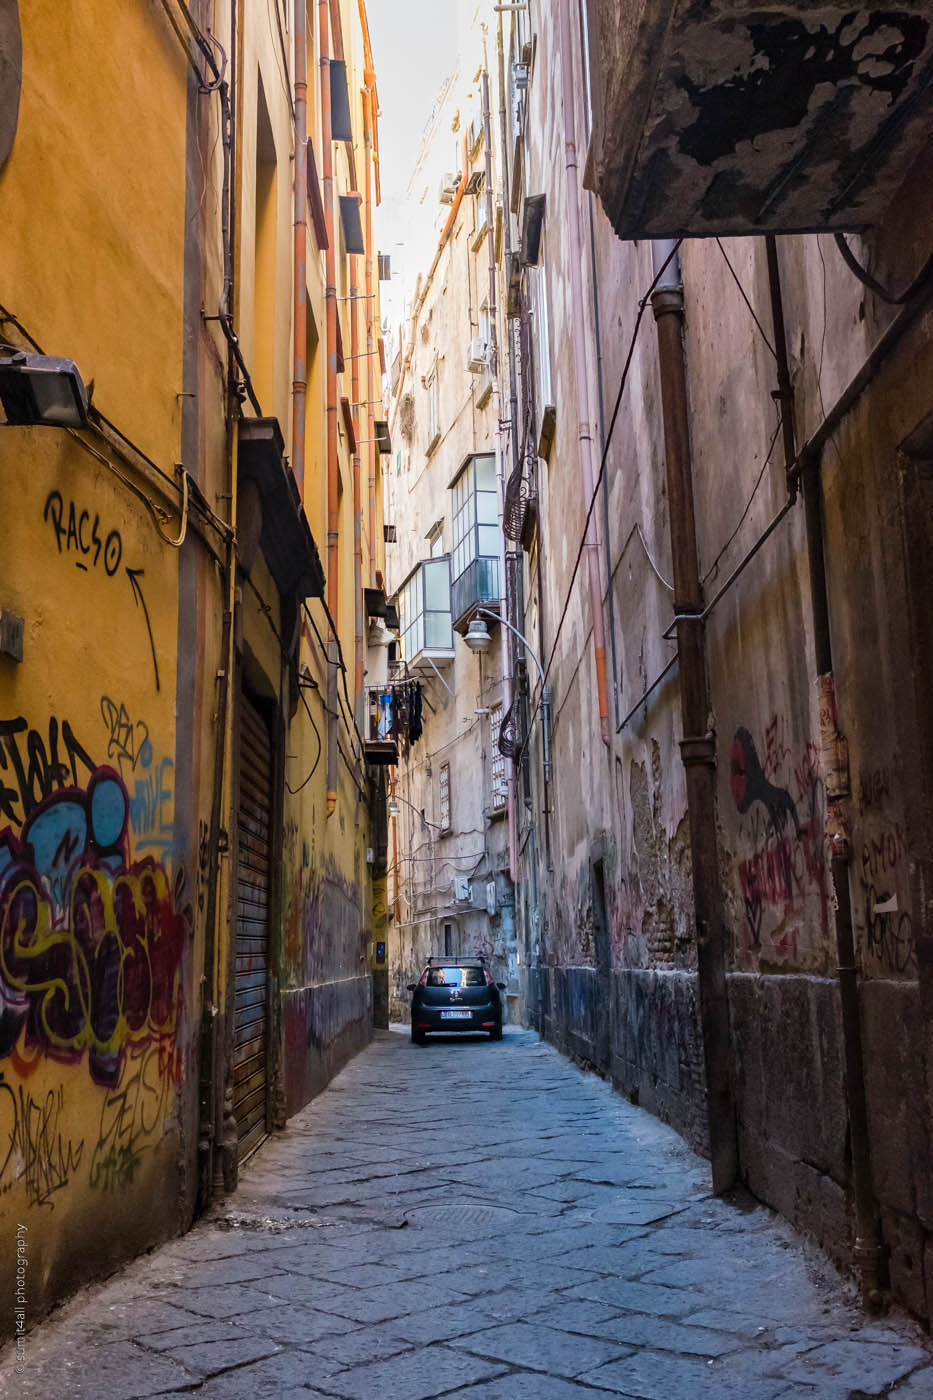 A car passes through a narrow road in Naples, Italy